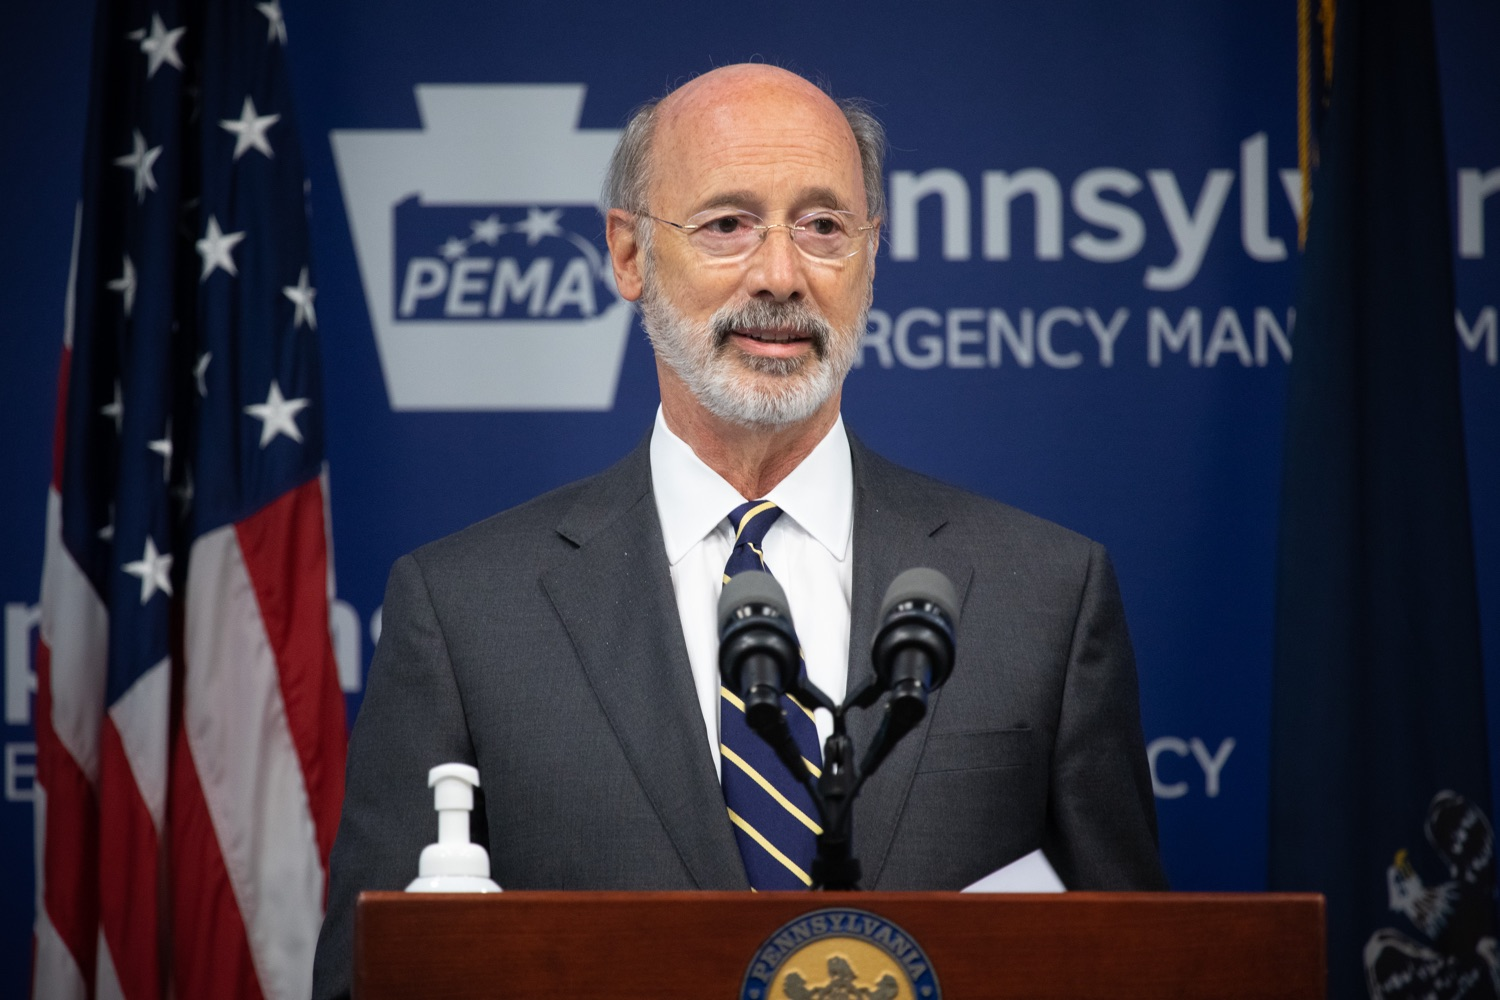 """<a href=""""https://filesource.wostreaming.net/commonwealthofpa/photo/18165_GOV_covid_mitigation_dz_14.jpg"""" target=""""_blank"""">⇣Download Photo<br></a>Pennsylvania Governor Tom Wolf speaking with the press. Governor Tom Wolf and Sec. of Health Dr. Rachel Levine today signed new orders for targeted mitigation efforts in response to the recent rise in COVID cases, primarily in southwest Pennsylvania, but also in other counties in the state, influencing the decision for statewide mitigation efforts for bars and restaurants, gatherings and telework. The new orders take effect at 12:01 a.m., Thursday, July 16, 2020.  Harrisburg, - July 15, 2020"""